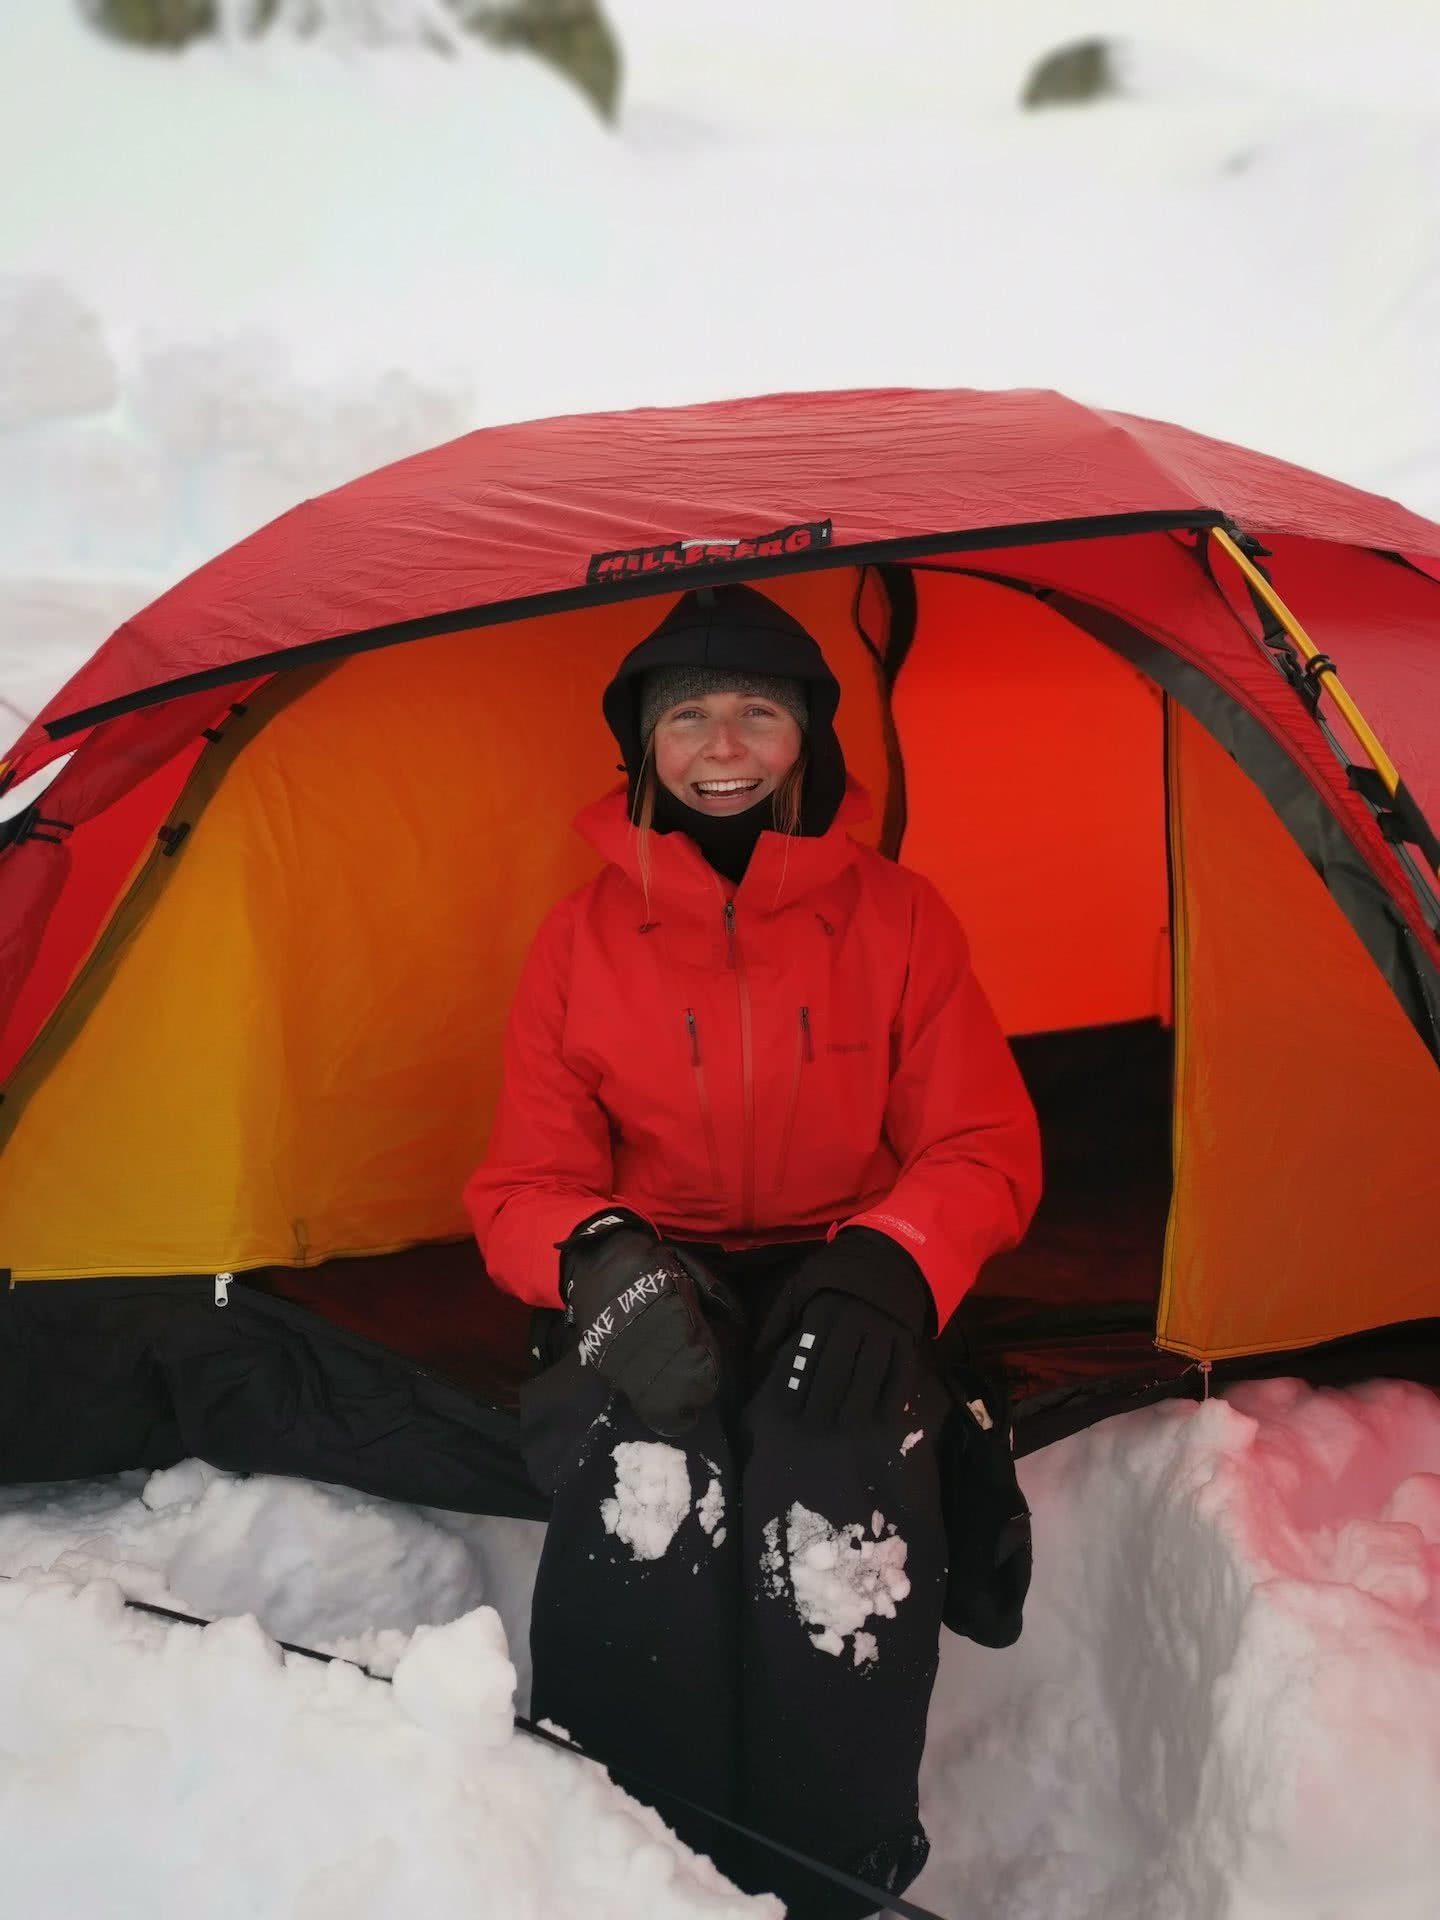 A Beginner's Guide to snow camping, Kate Donald, kosciuszko, jagungal, tent, snow, backcountry, nsw, tent, hilleberg